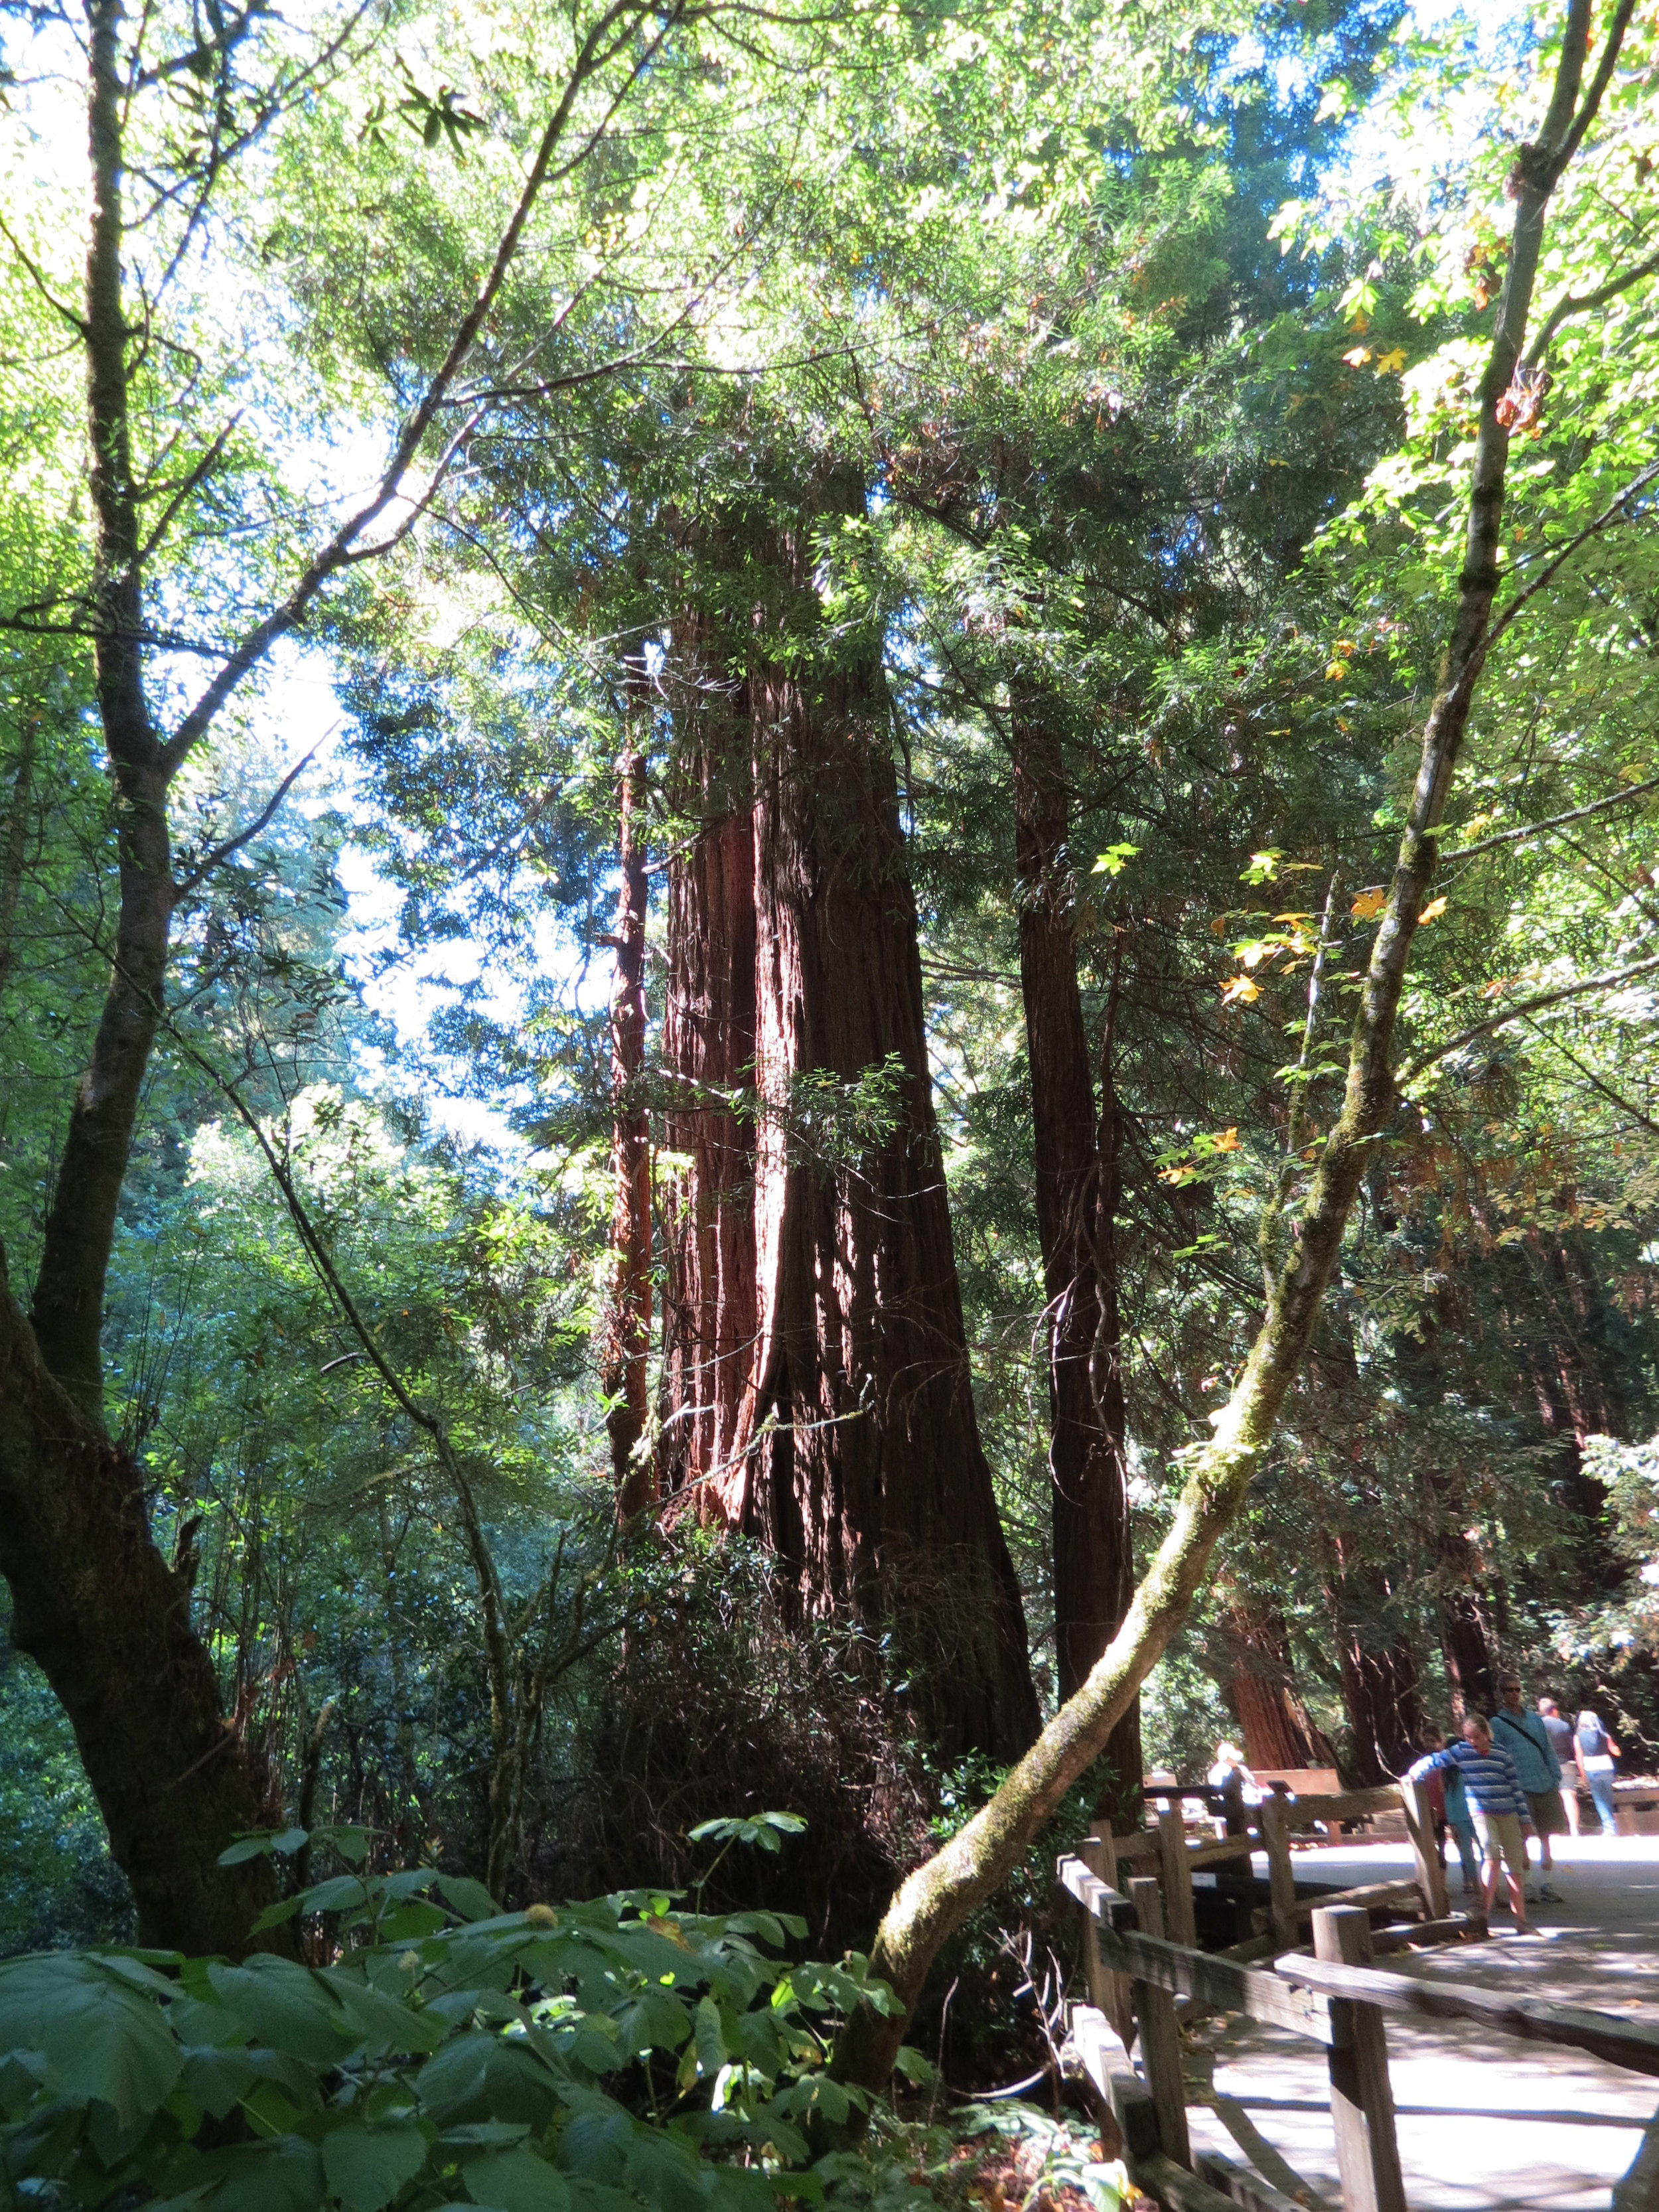 muirs woods national monument   - California - 2012 - walking amongst the giant redwoods